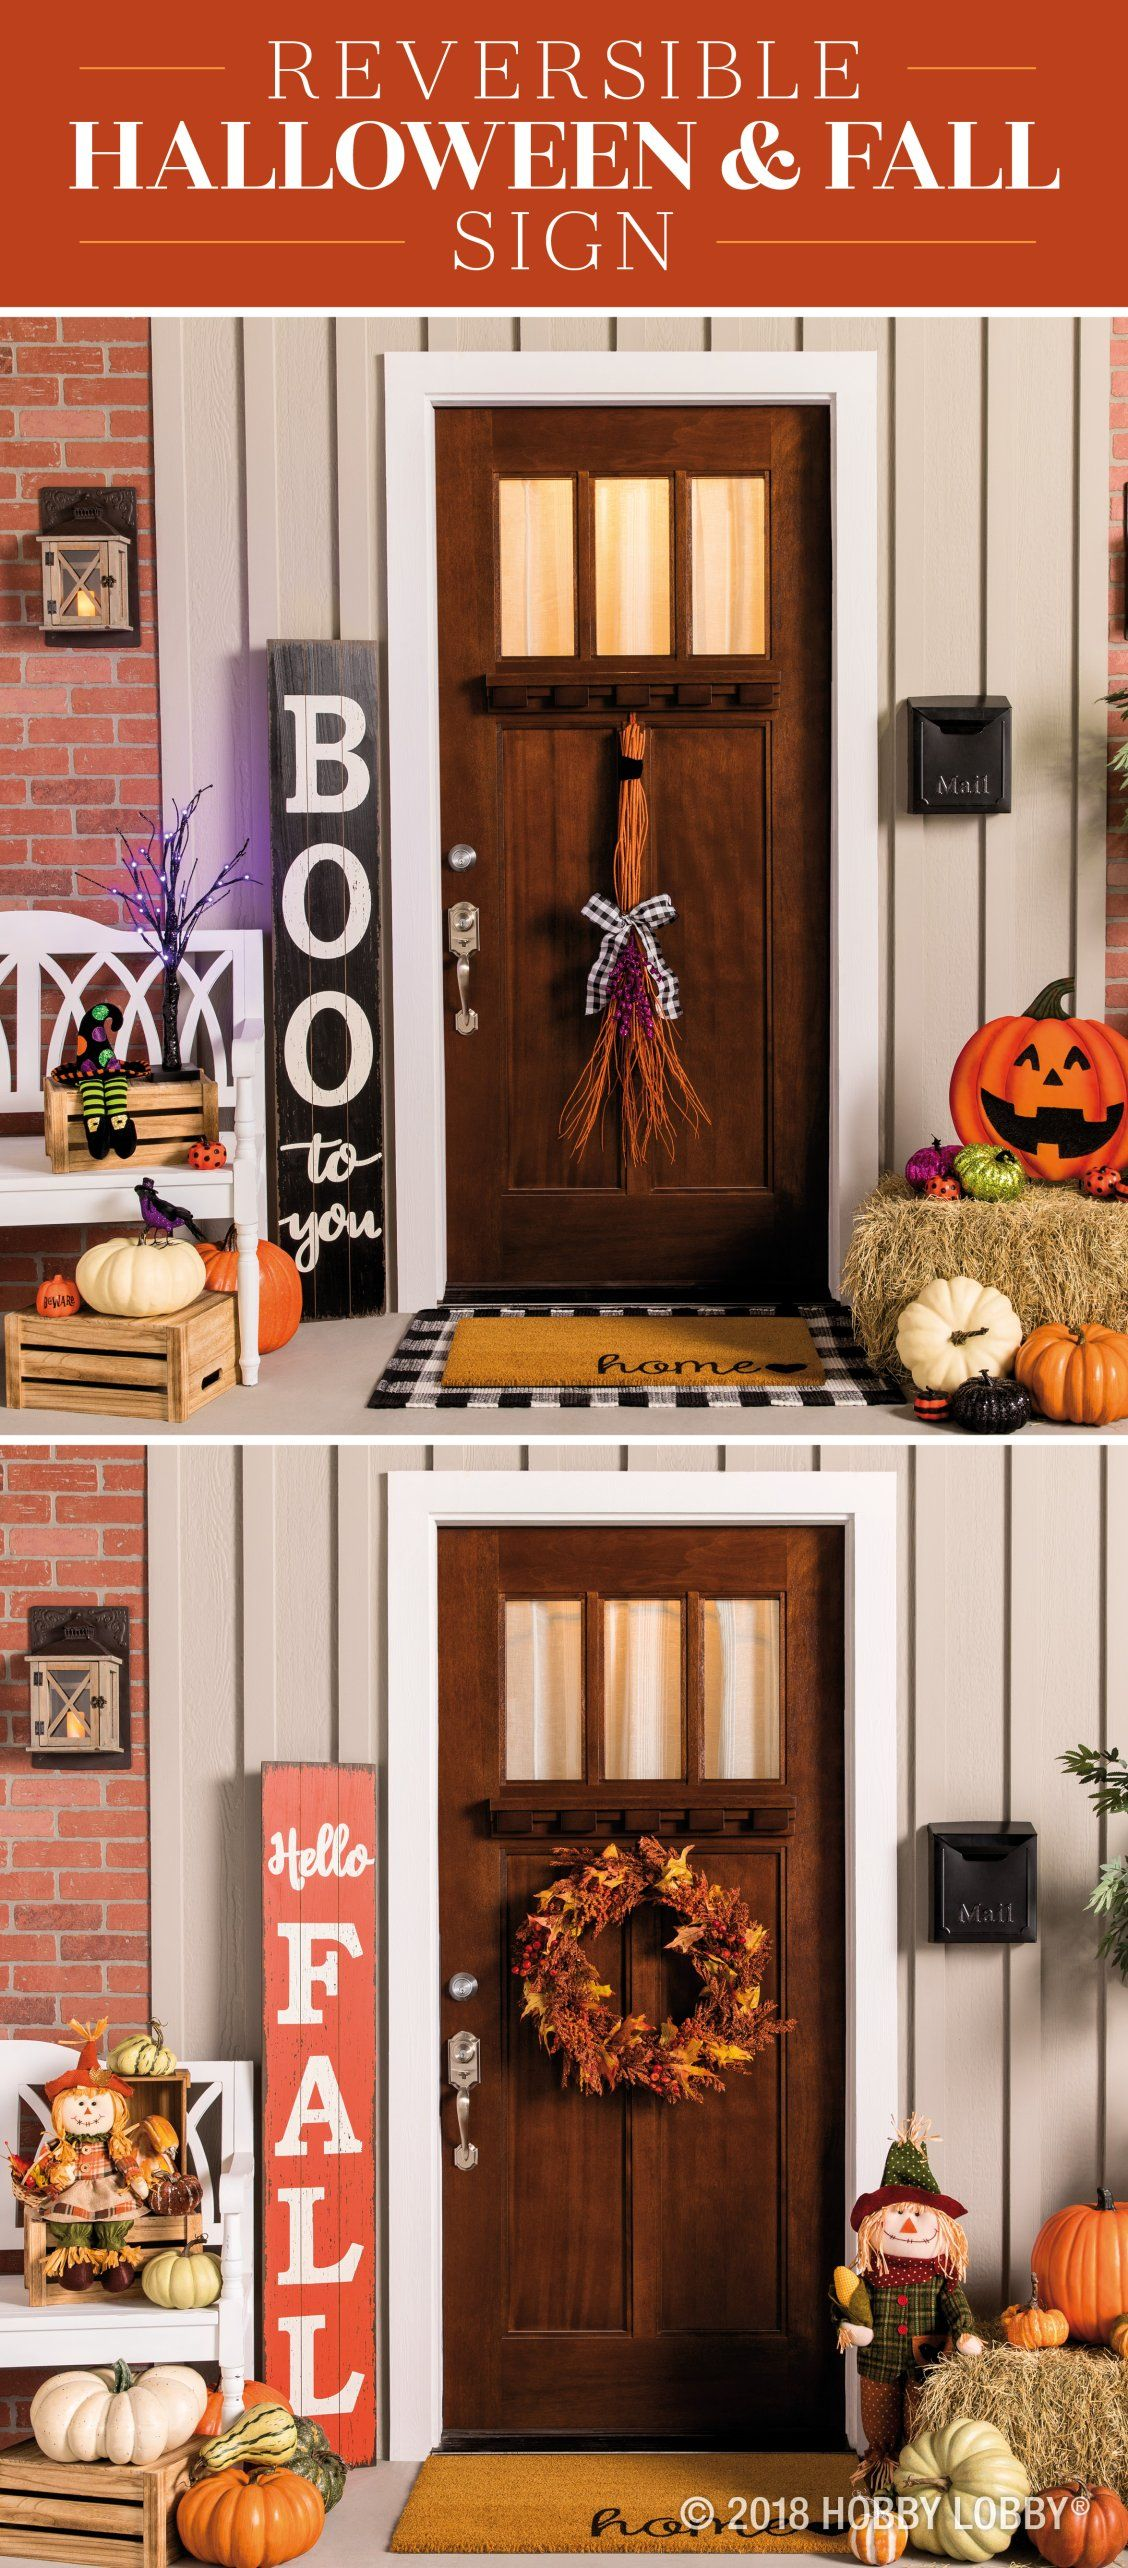 Switch Up Your Porch Decor For Fall And Halloween With Cute